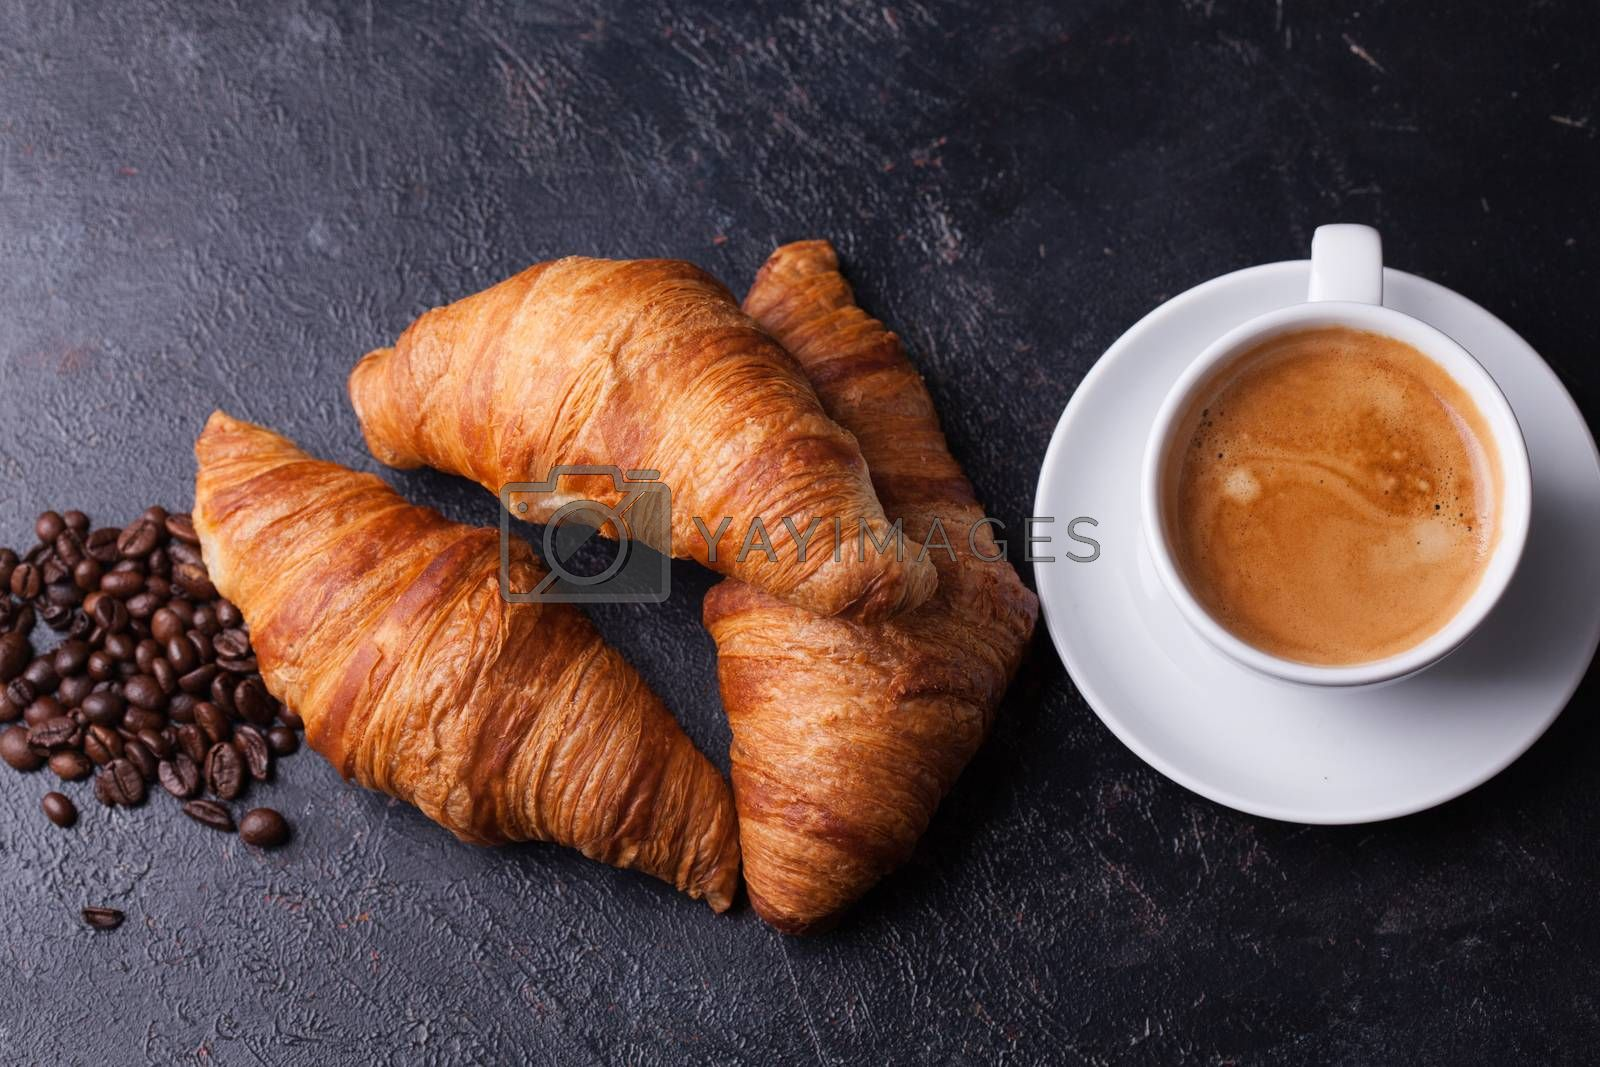 Croissants with cup of coffee and coffee beans on dark wooden table by DCStudio